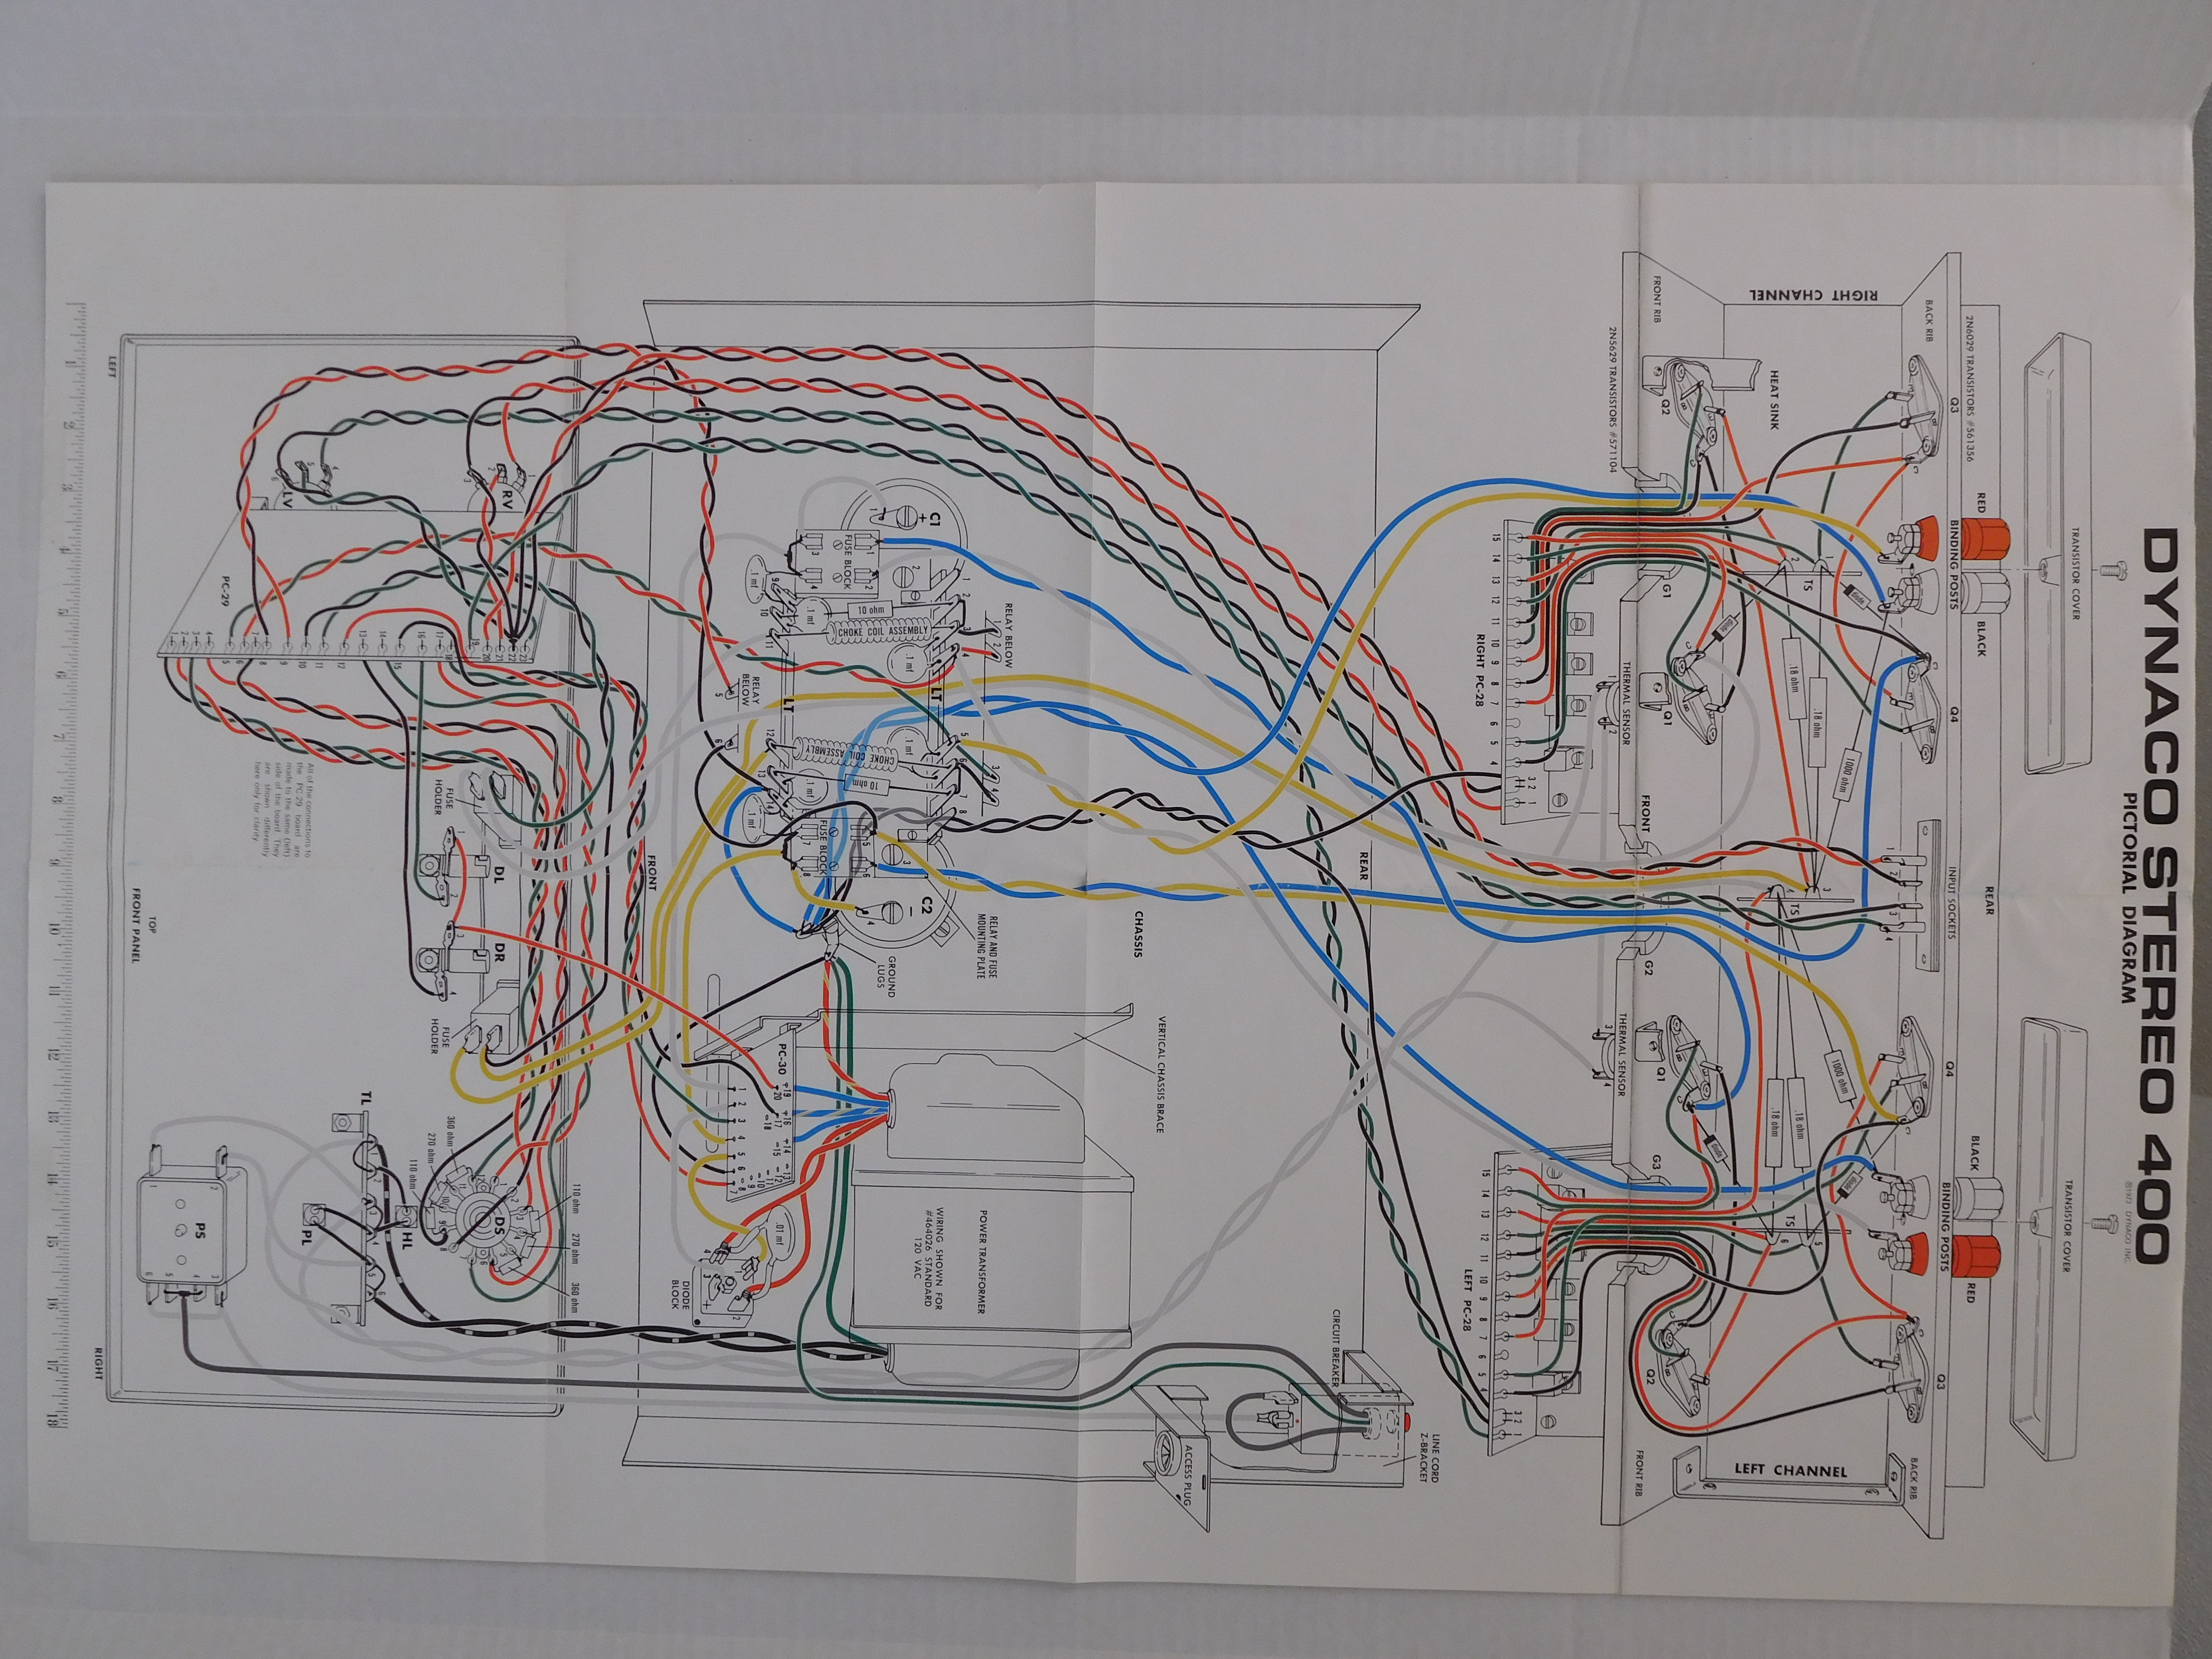 Stereo 400 416 And 410 4 Ohm Wiring Diagram Picture Of The Whole